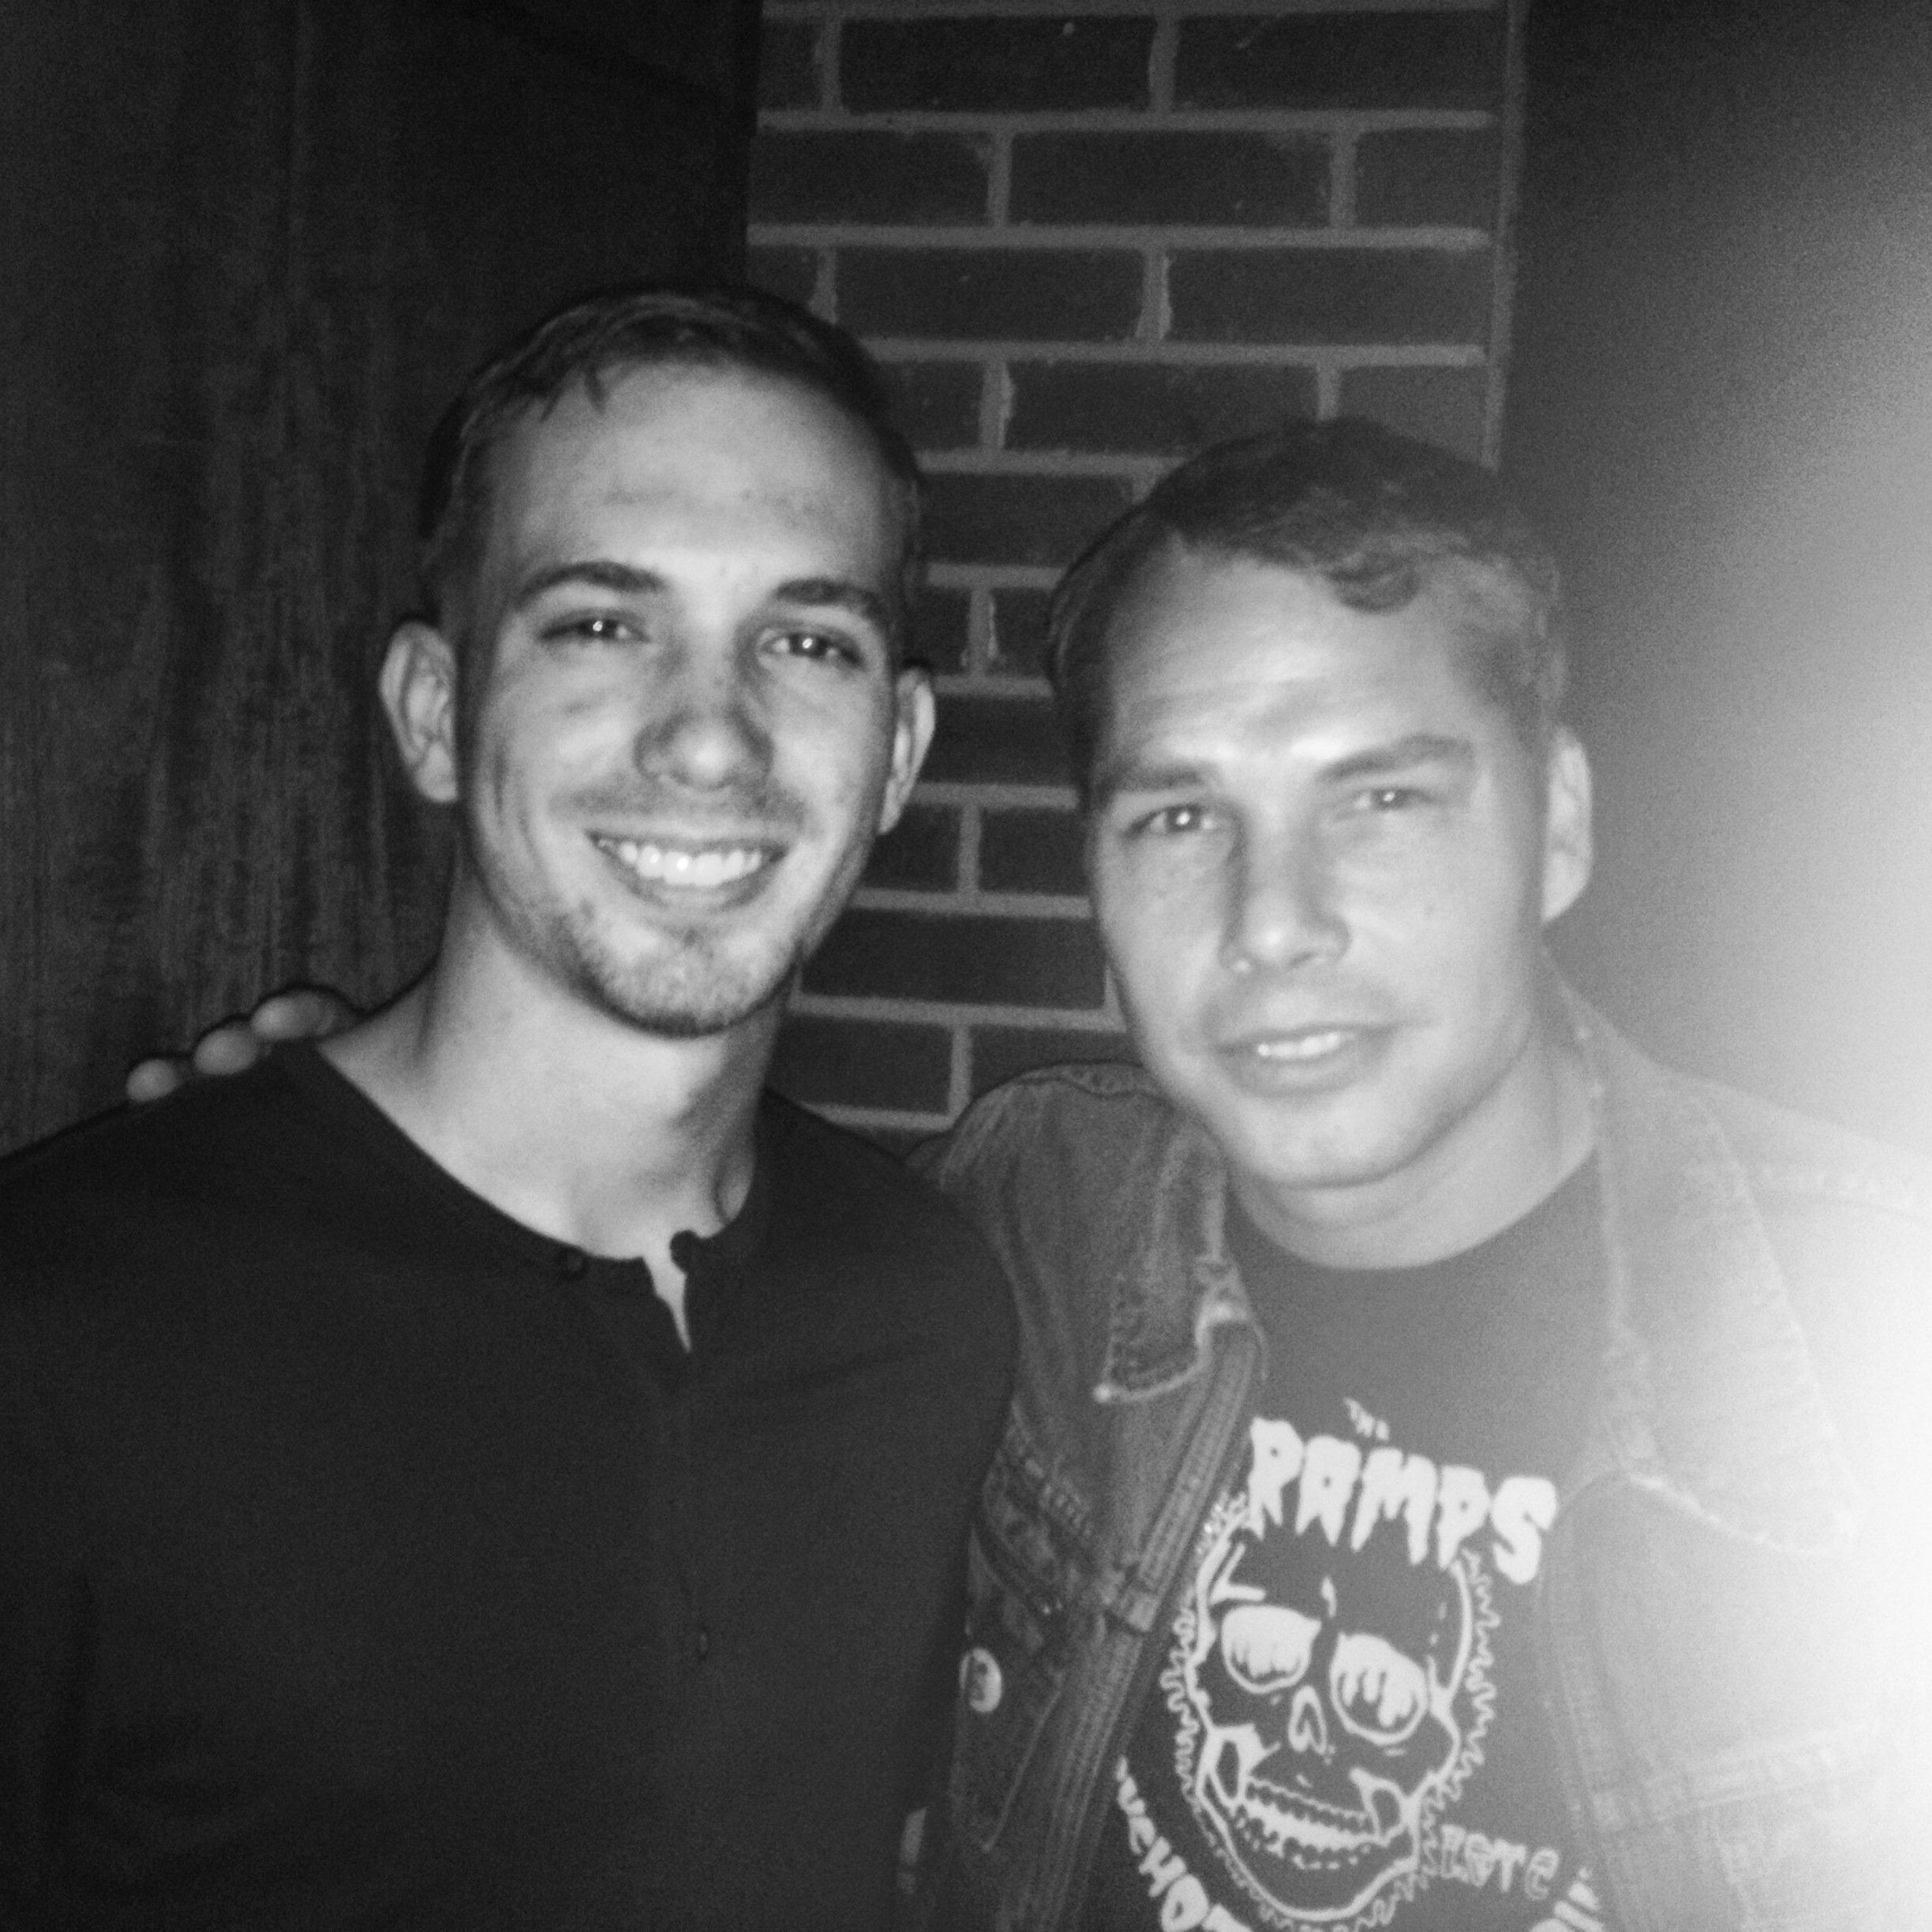 Shepard Fairey and I